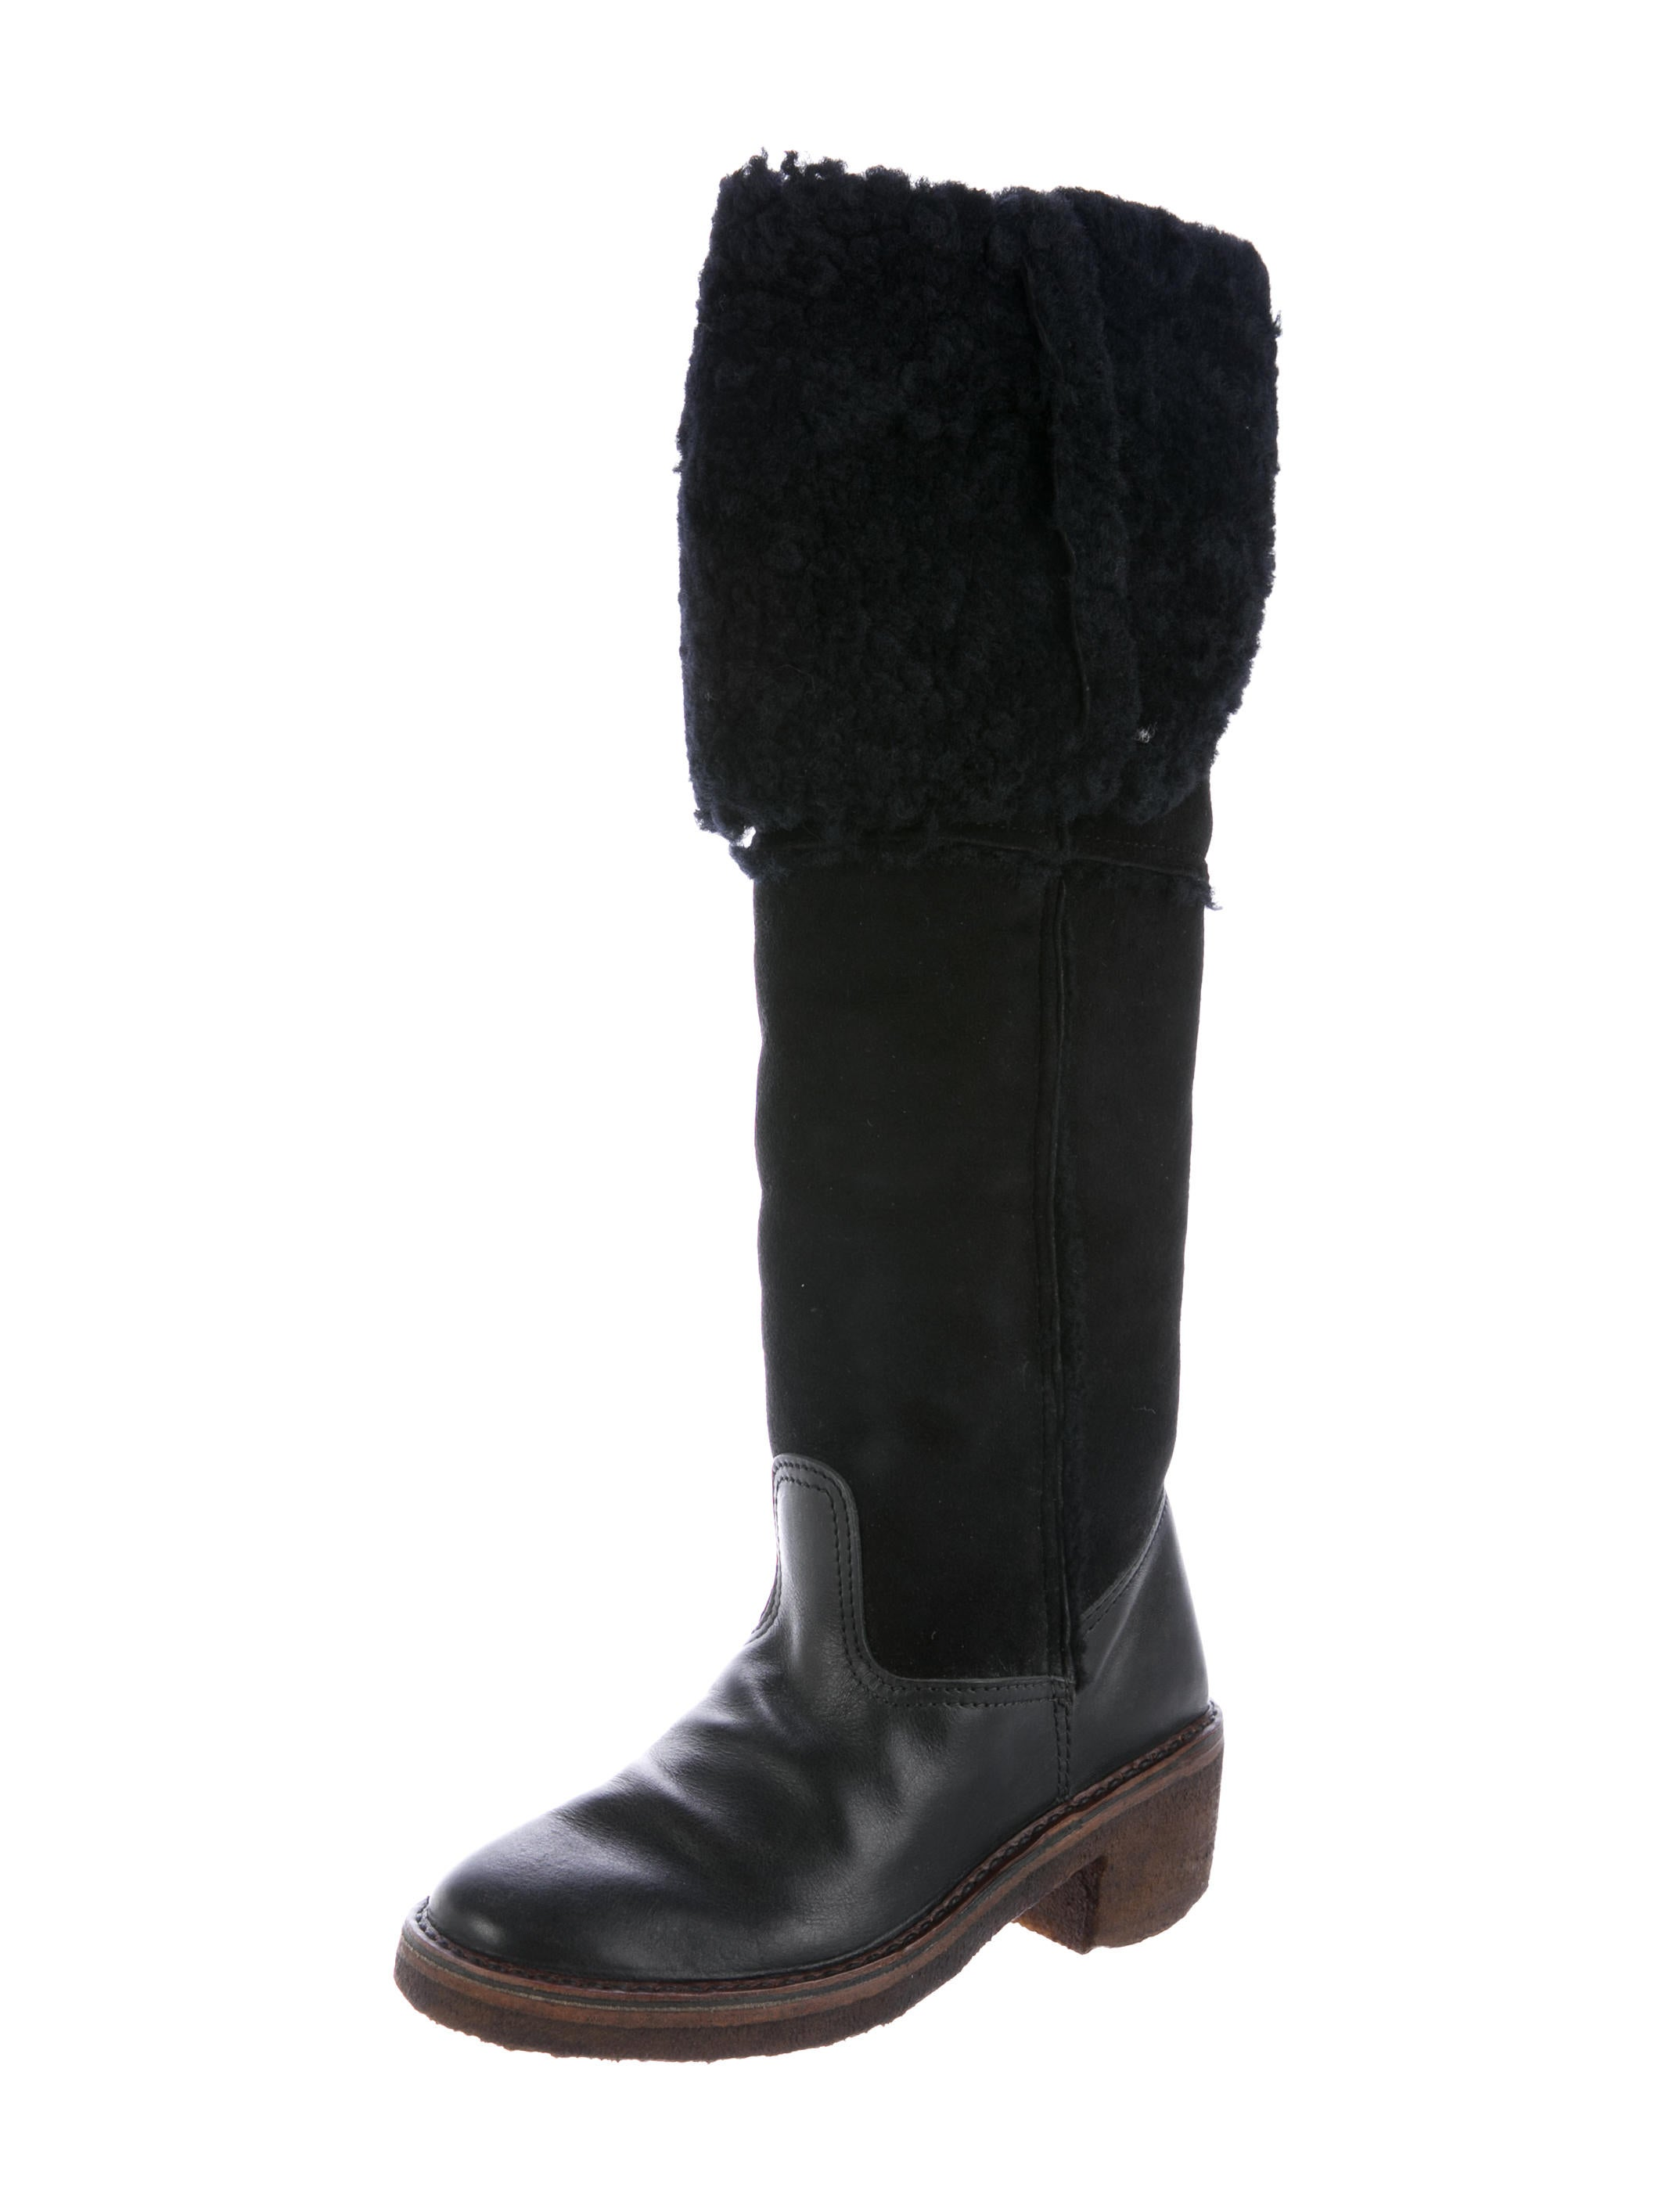 maison margiela shearling knee high boots shoes